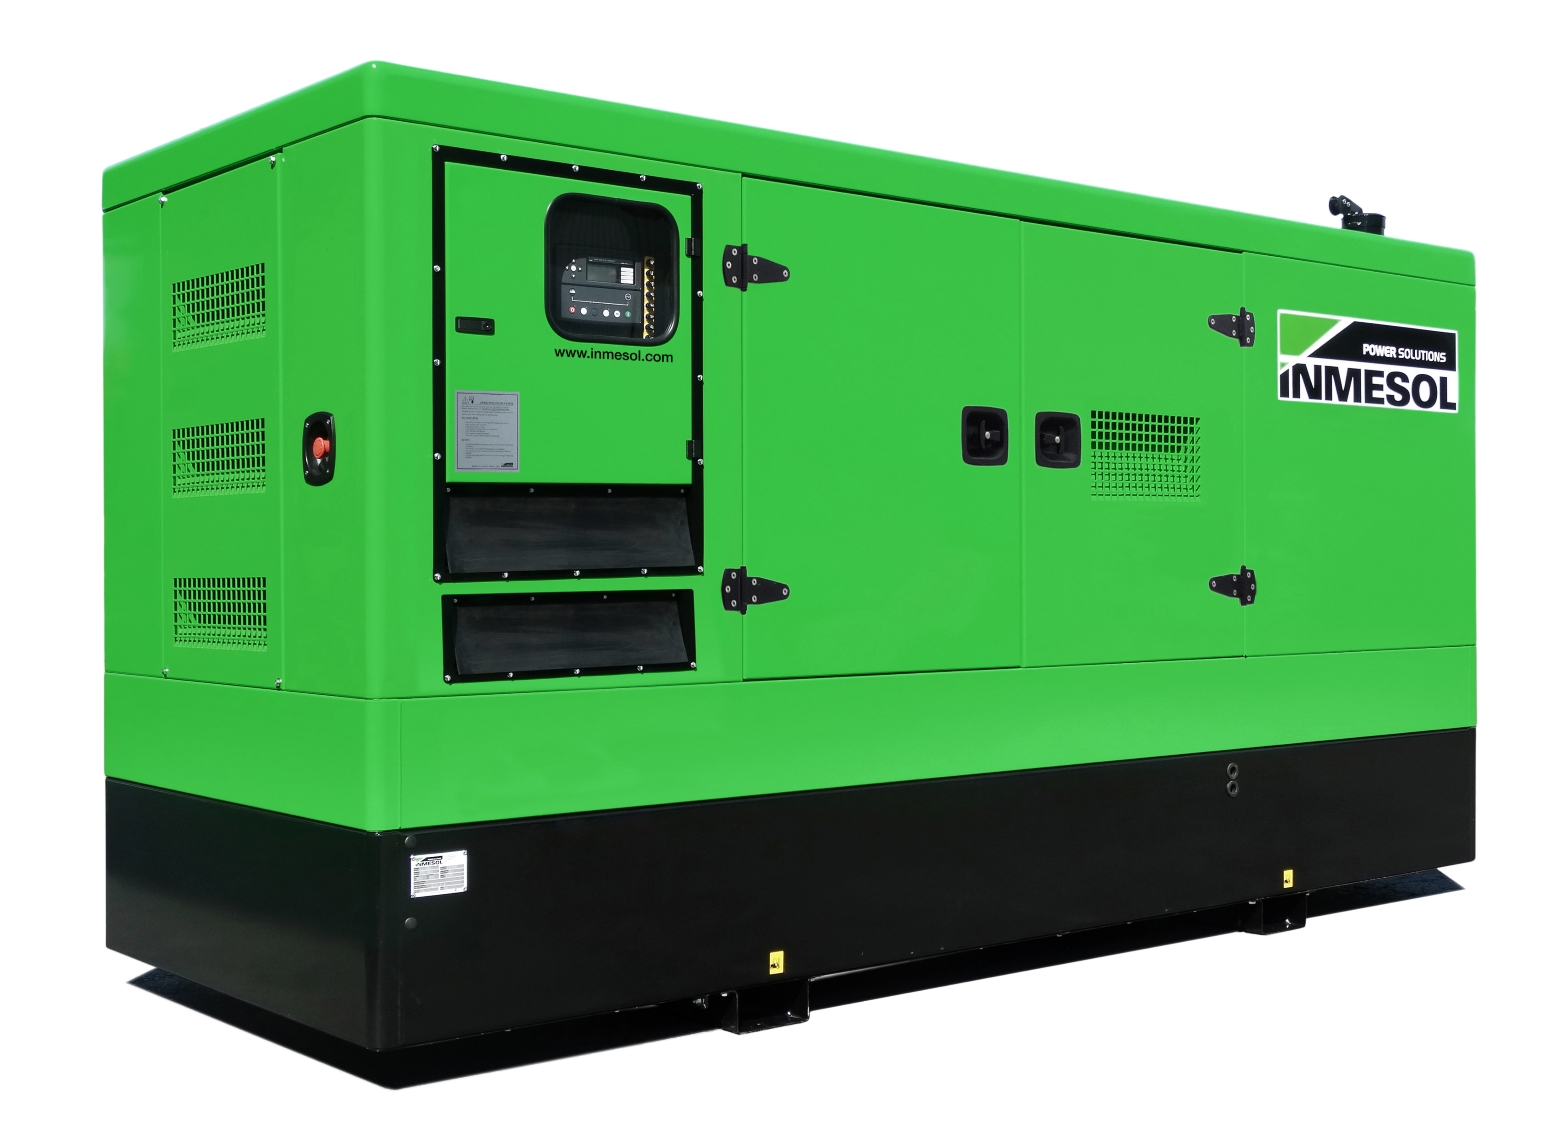 Generator with manual control panel.IV-275 - VOLVO - TAD734GE - 1.500 R.P.M. | 50 Hz